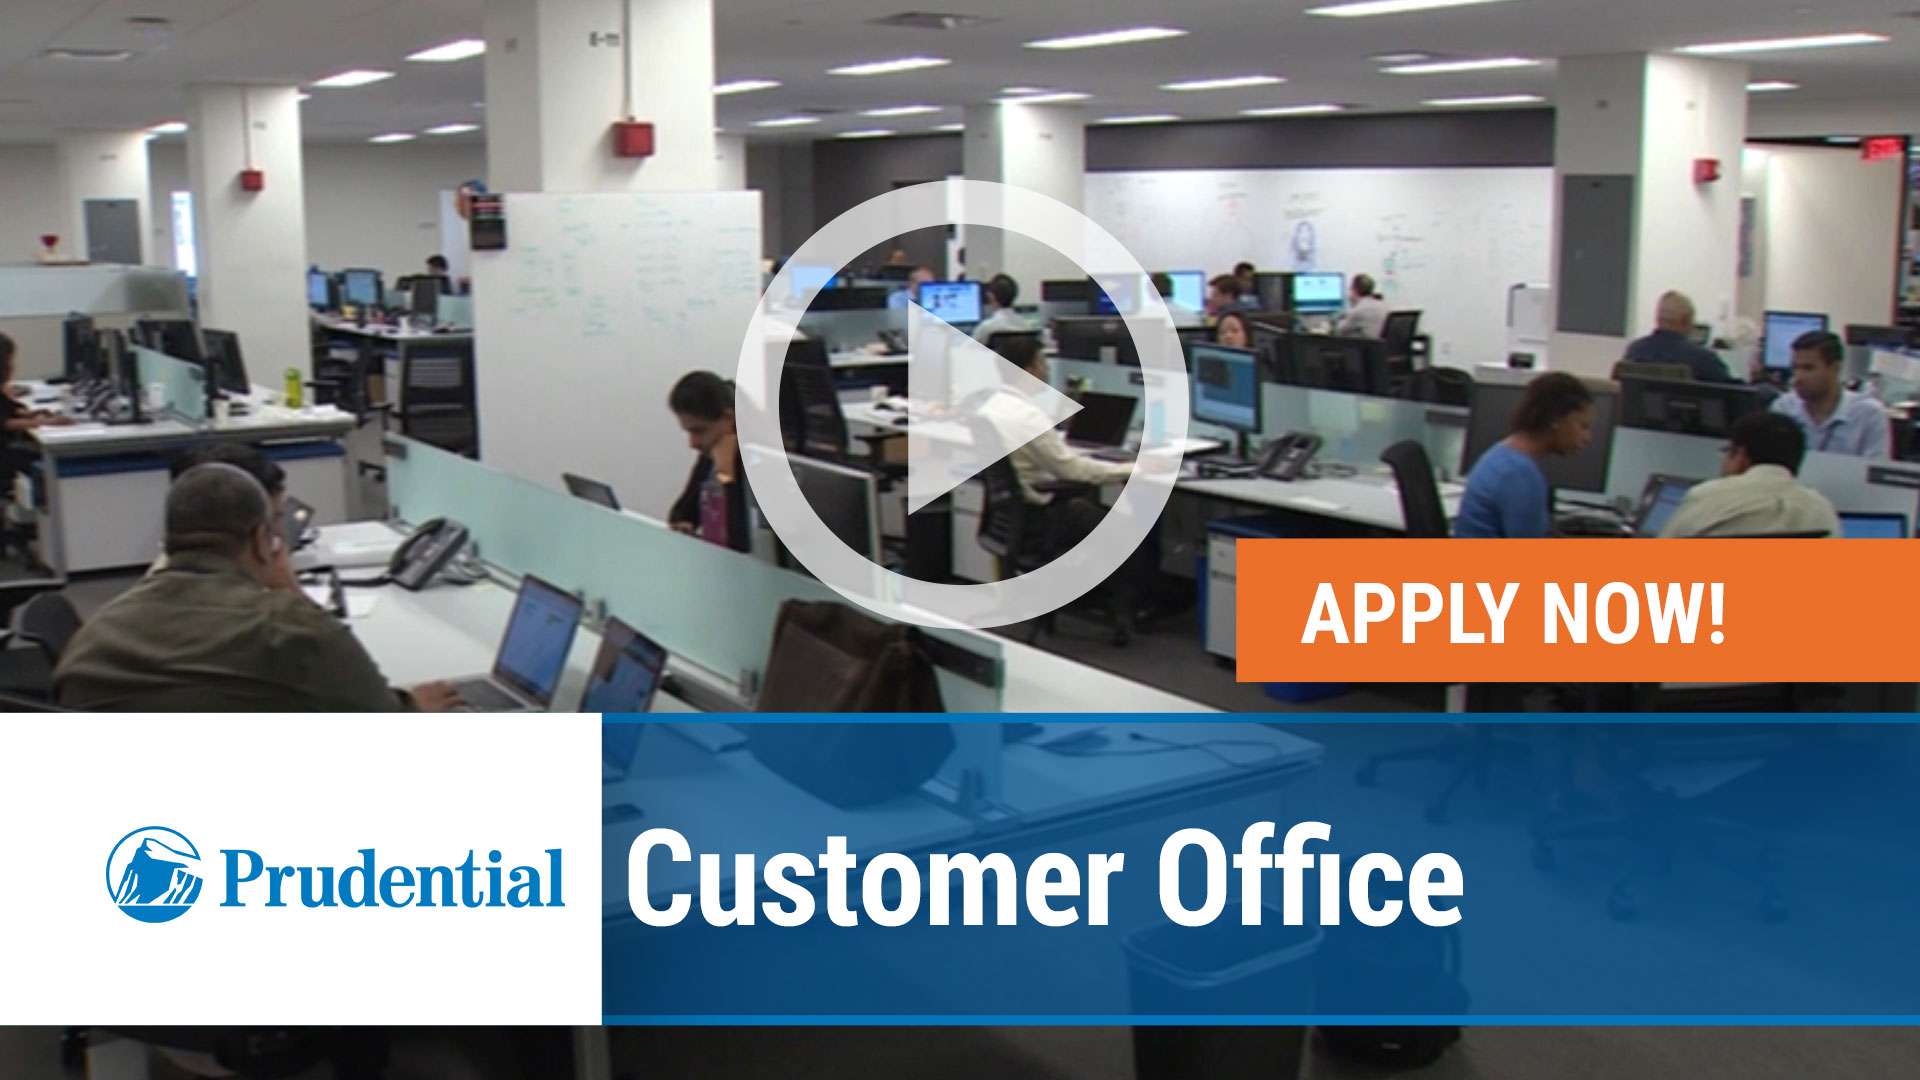 Watch our careers video for available job opening Customer Office in Sunnyvale, CA, USA